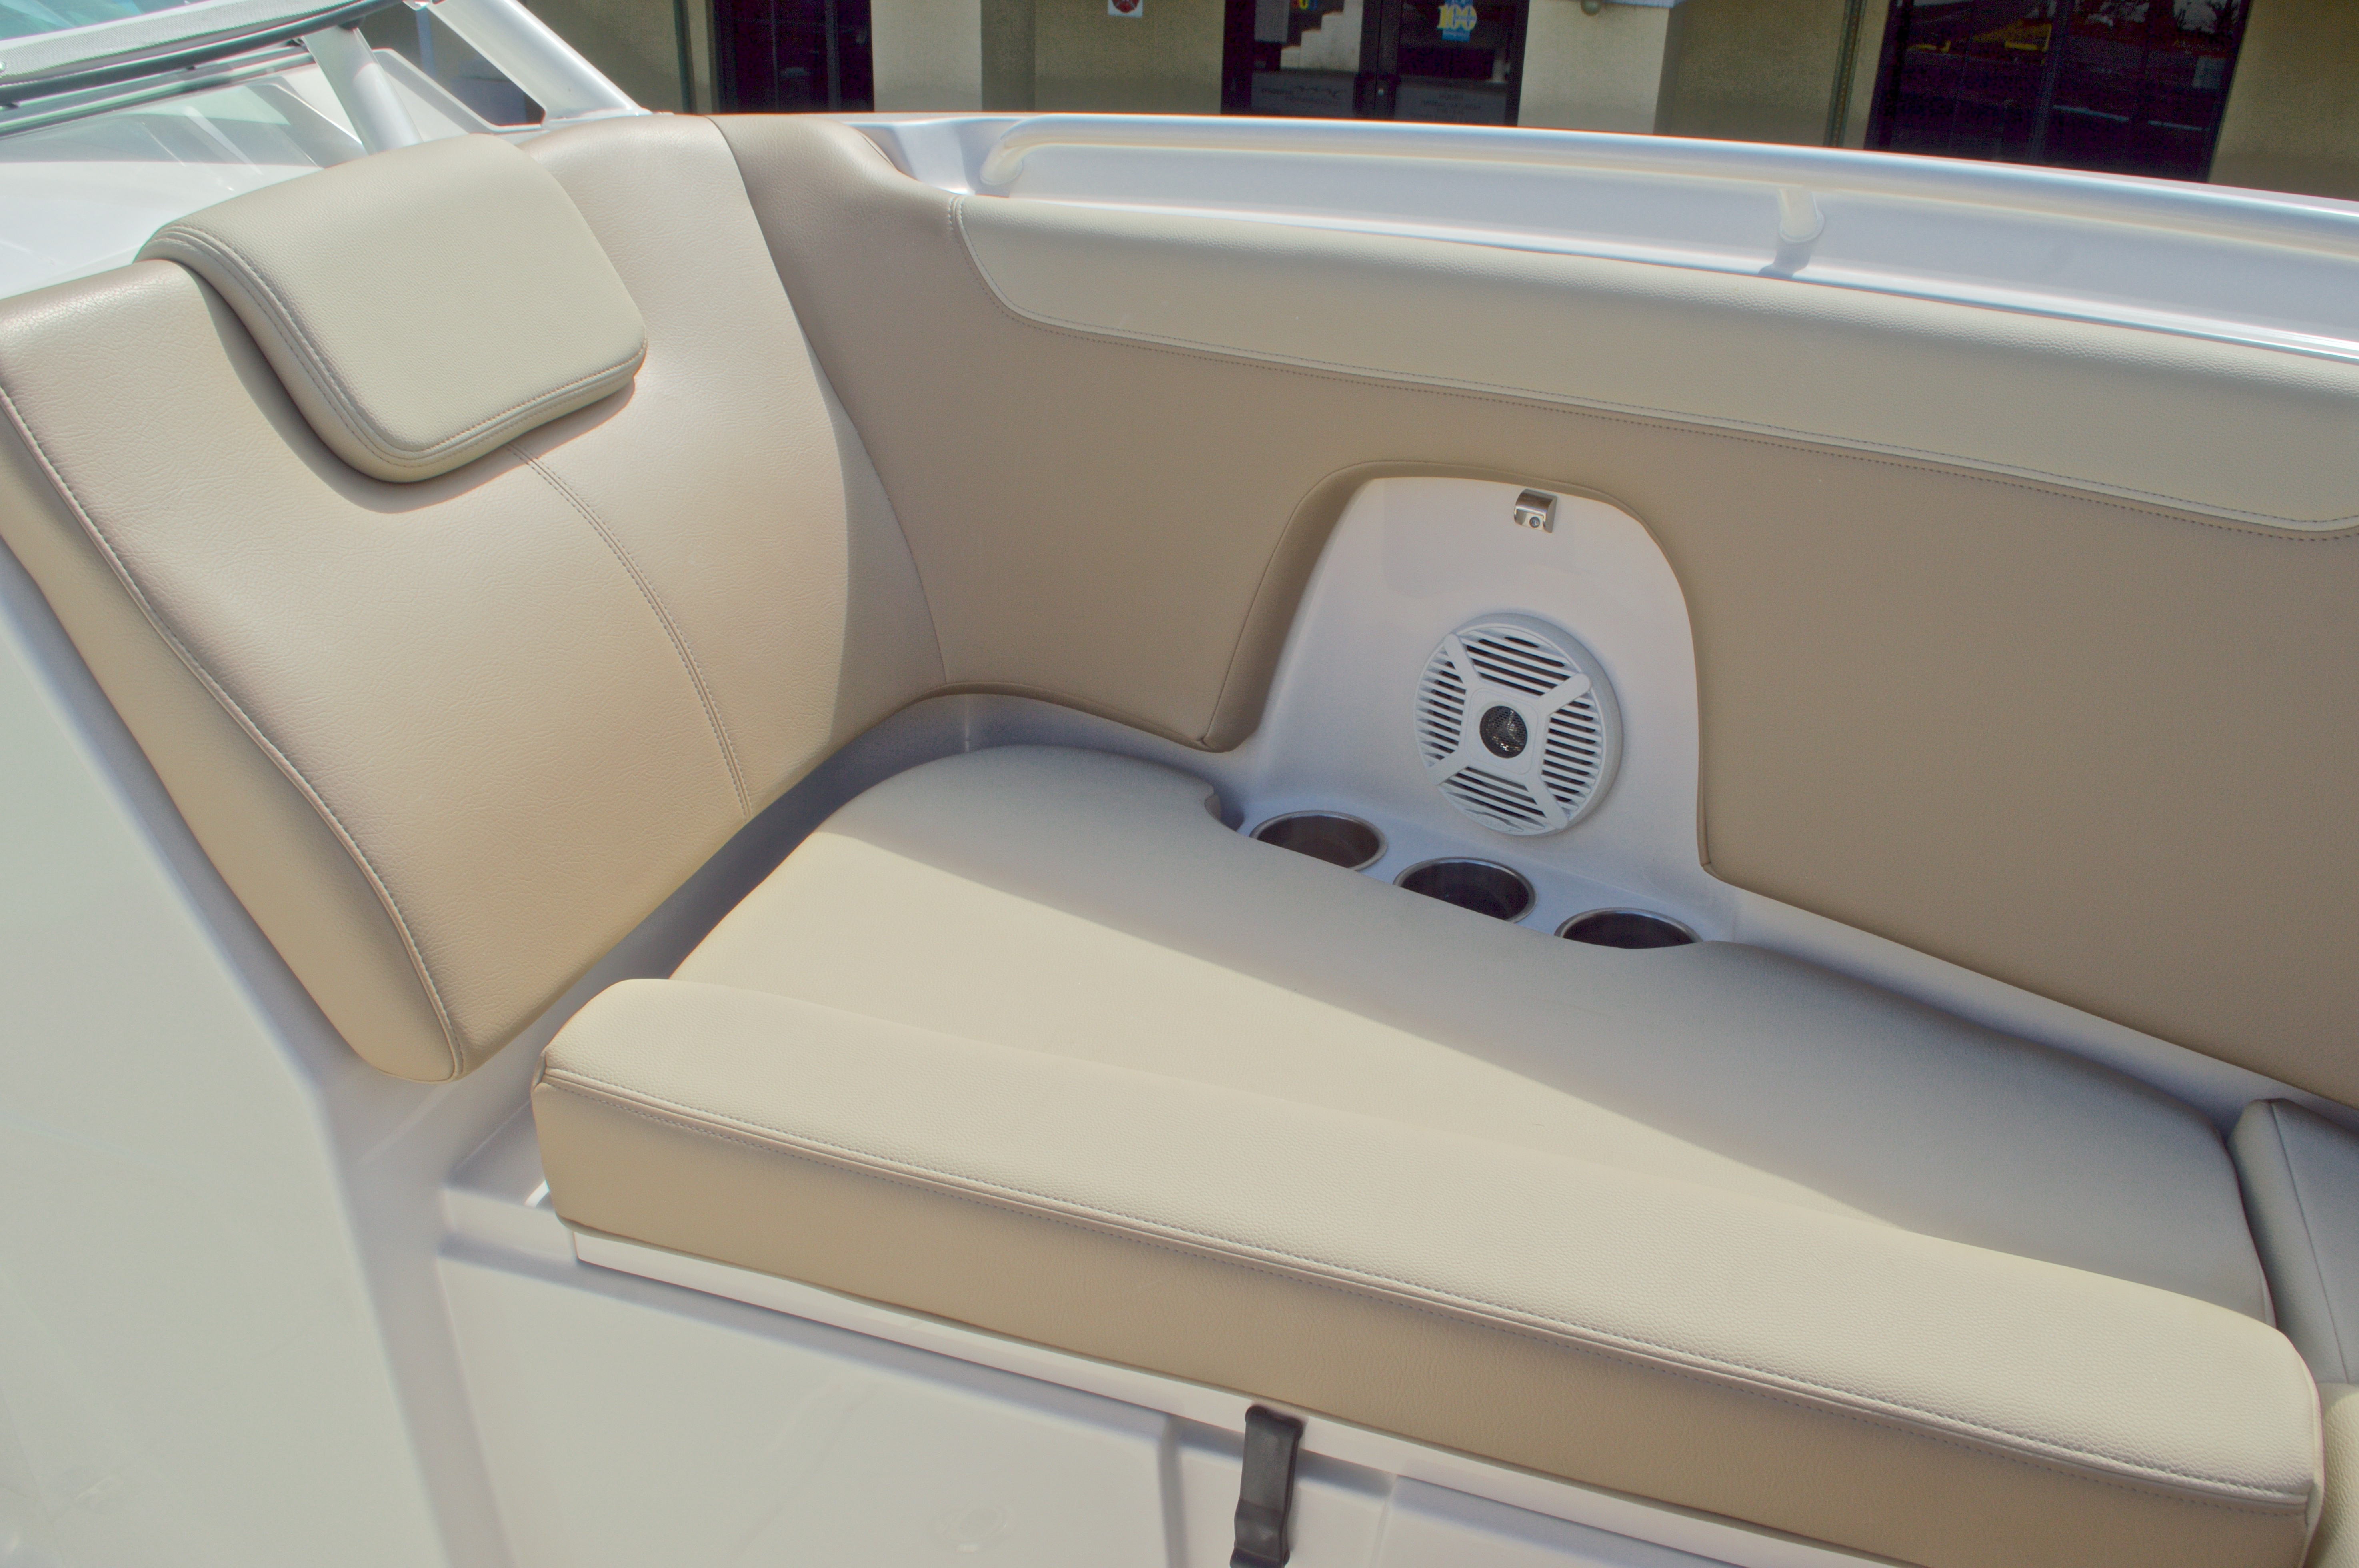 Thumbnail 57 for New 2017 Sailfish 275 Dual Console boat for sale in Vero Beach, FL